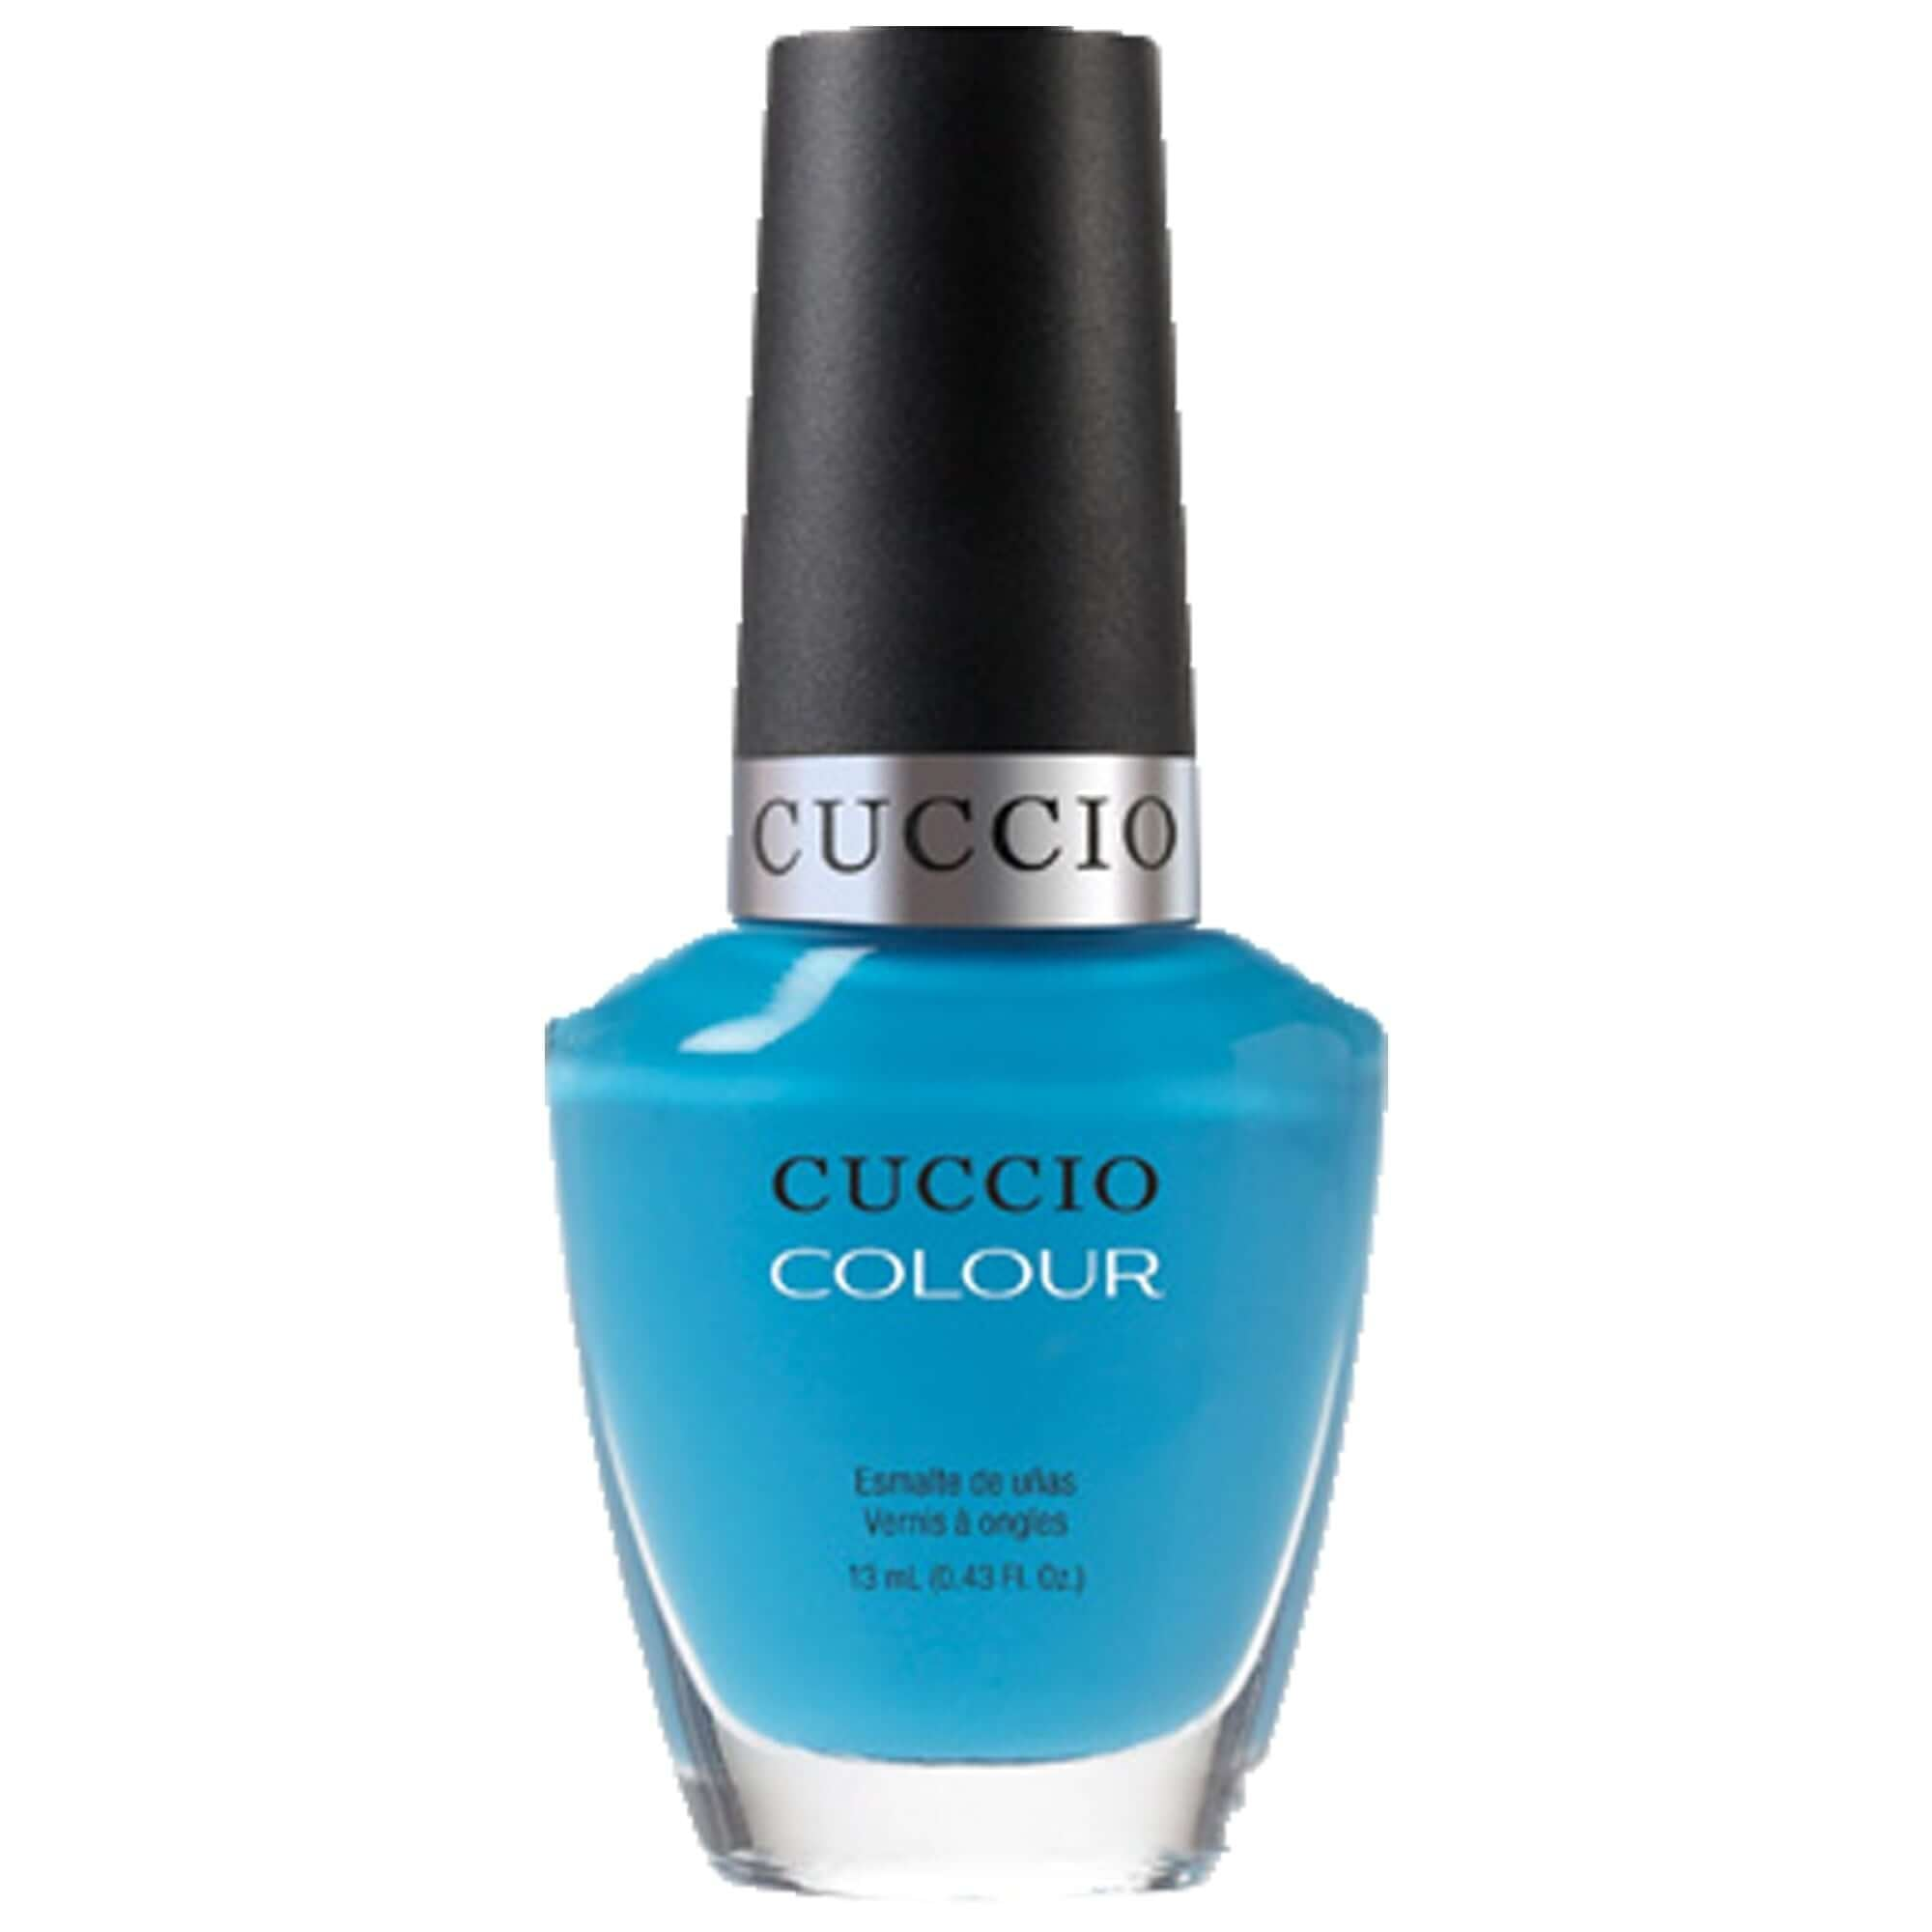 Co colour care guernsey - St Barts In A Bottle Colour Nail Polish 13ml